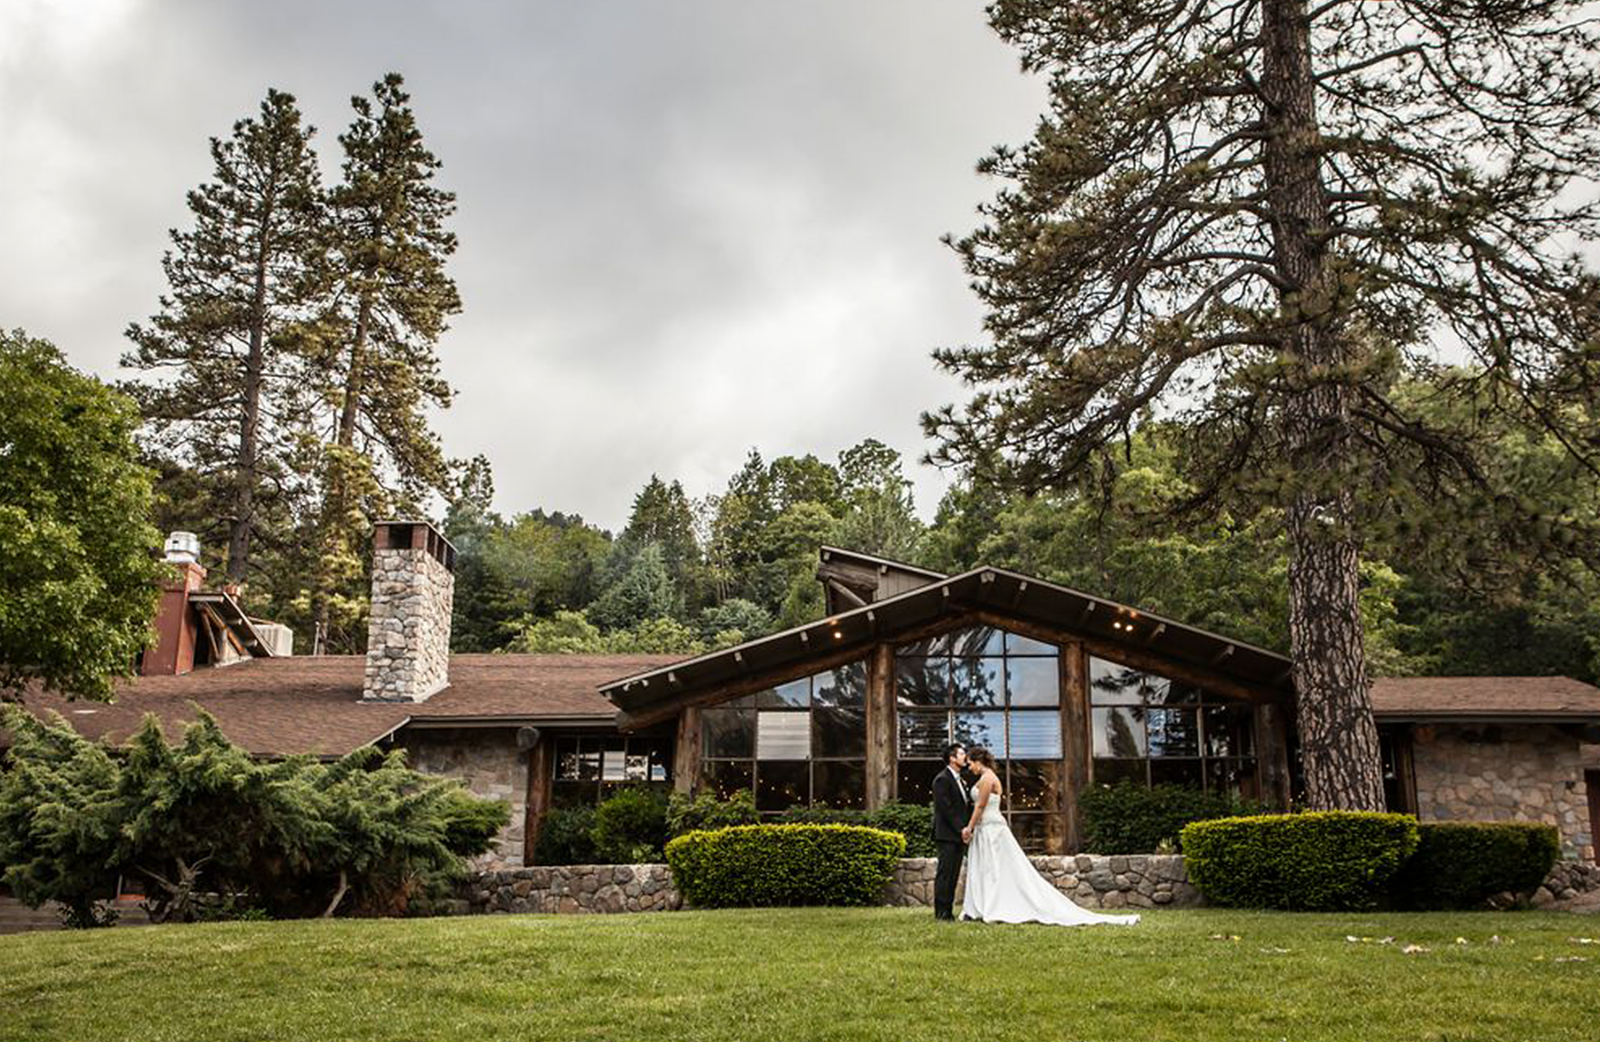 A man and woman on their wedding day as groom and bride kissing in front of the San Moritz lodge.